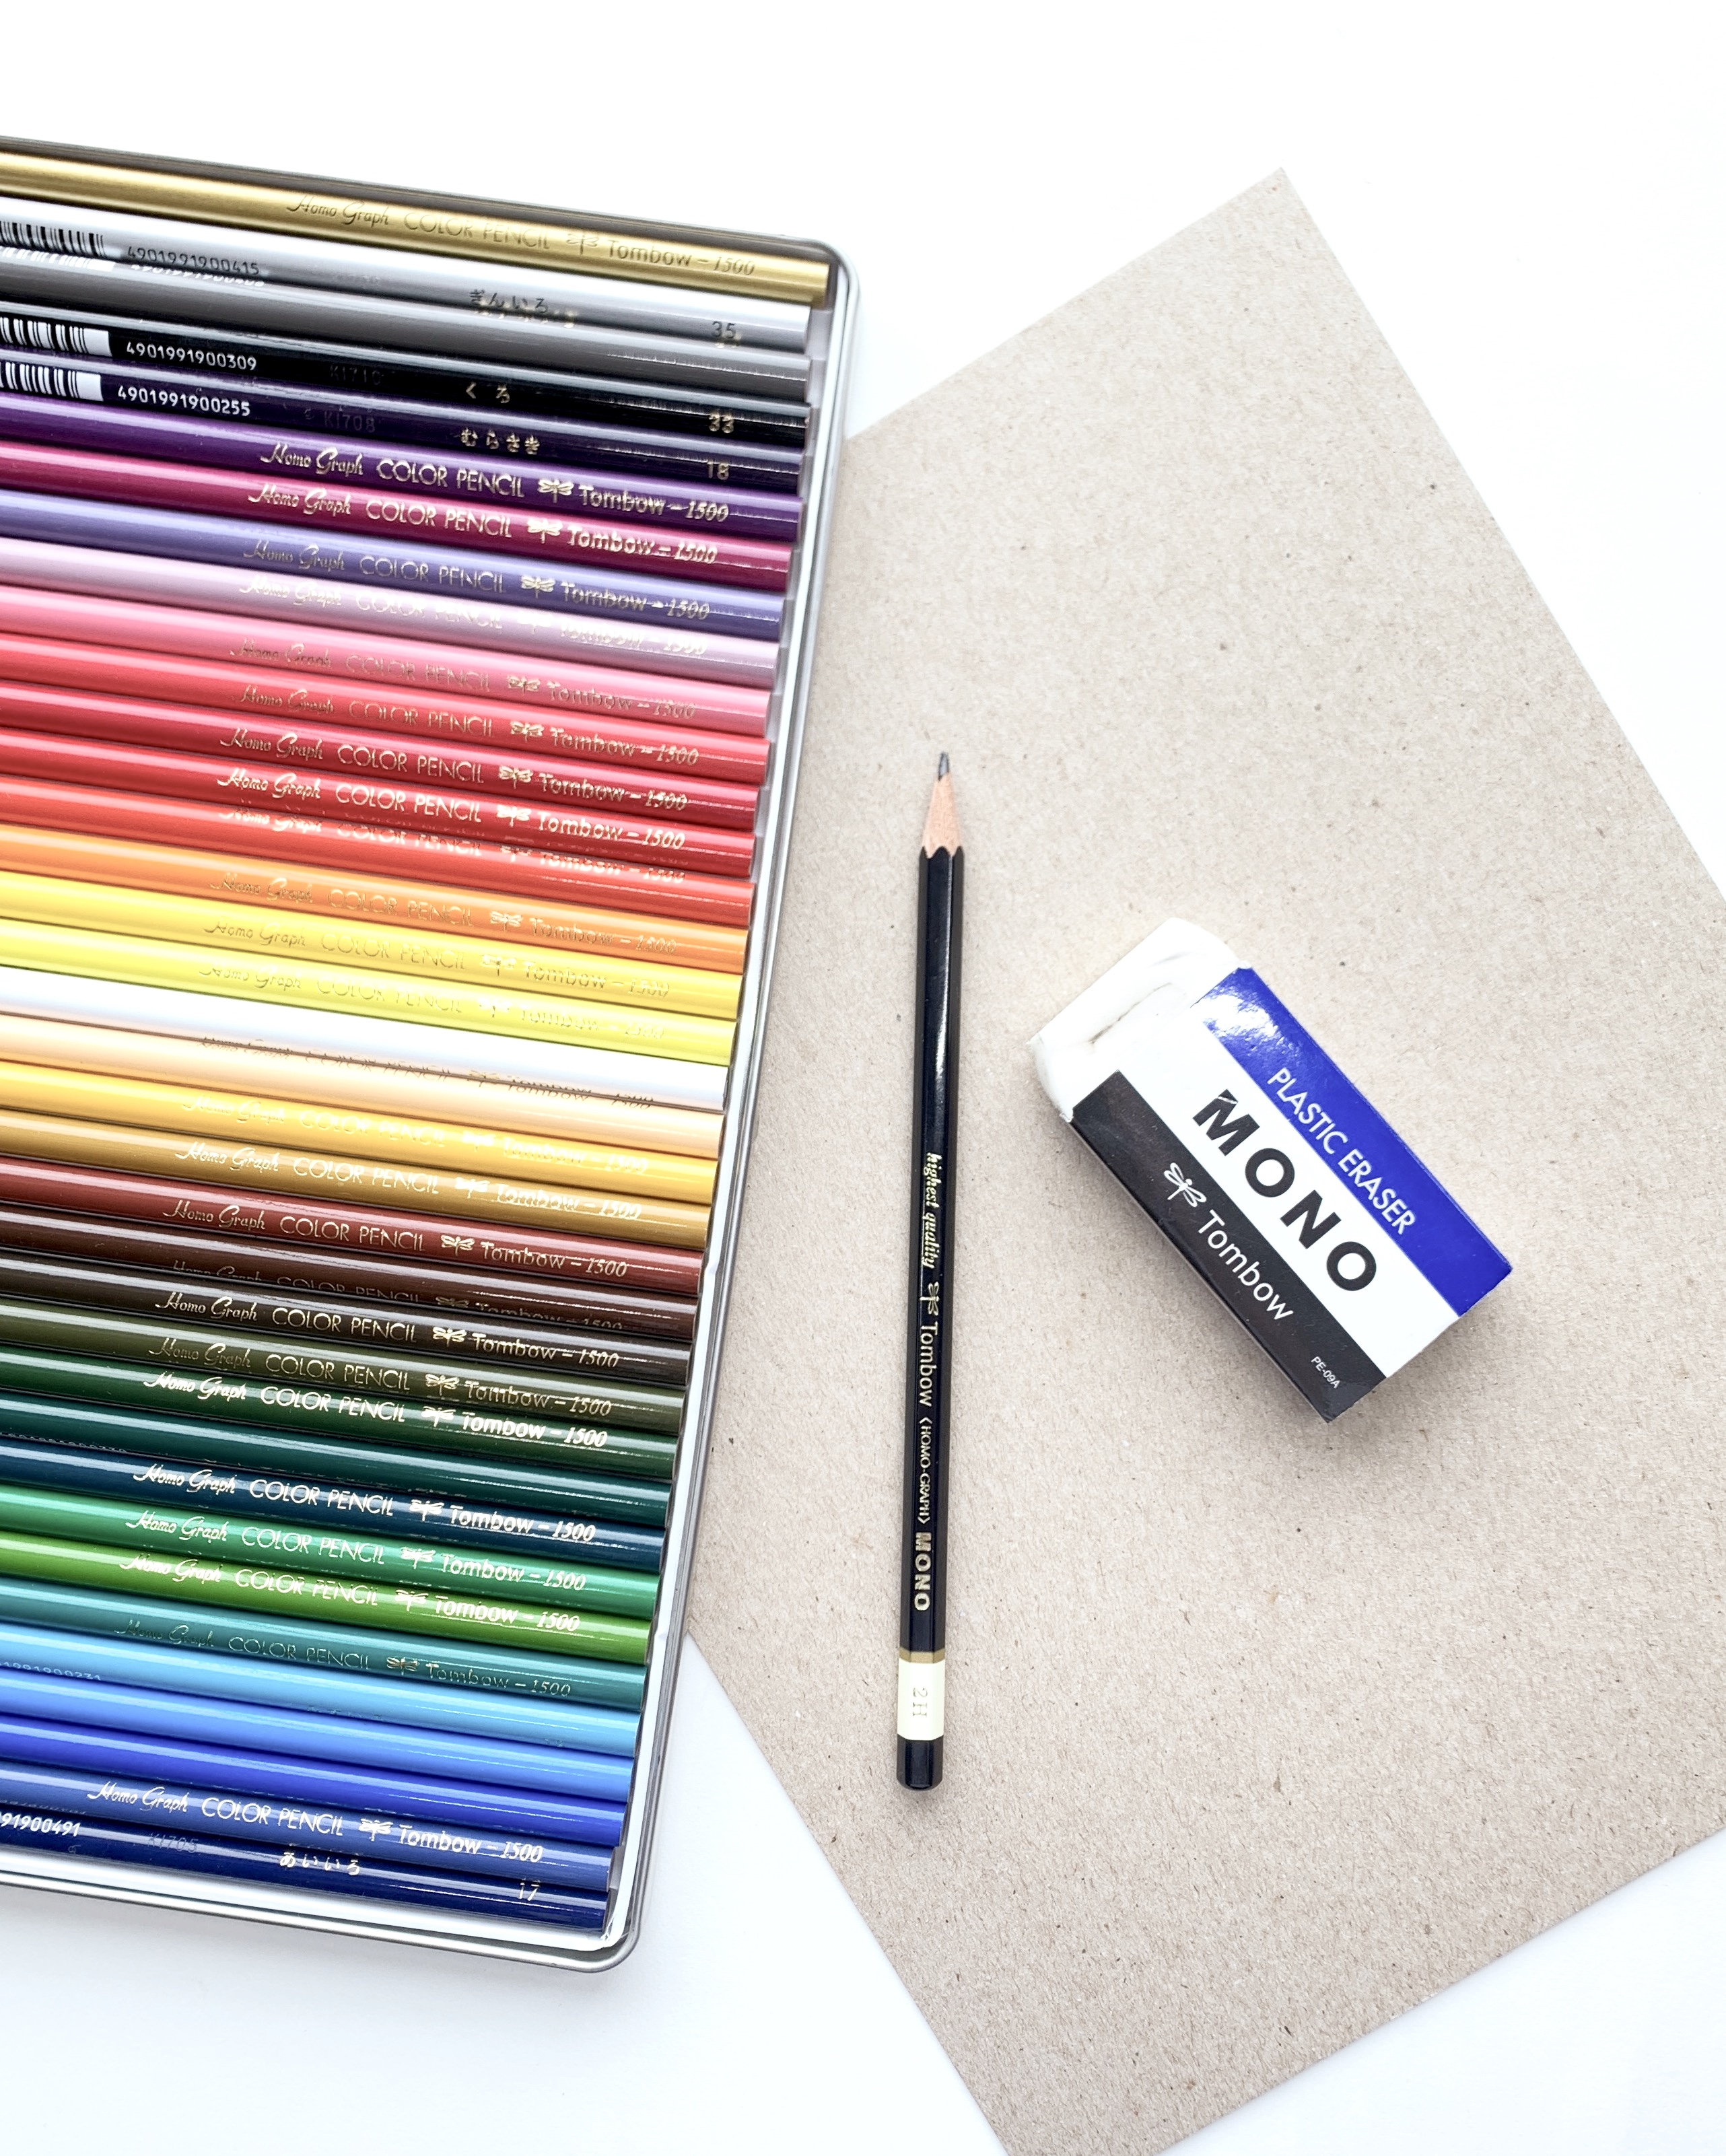 http blog tombowusa com 2019 04 09 how to blended lettering with colored pencils